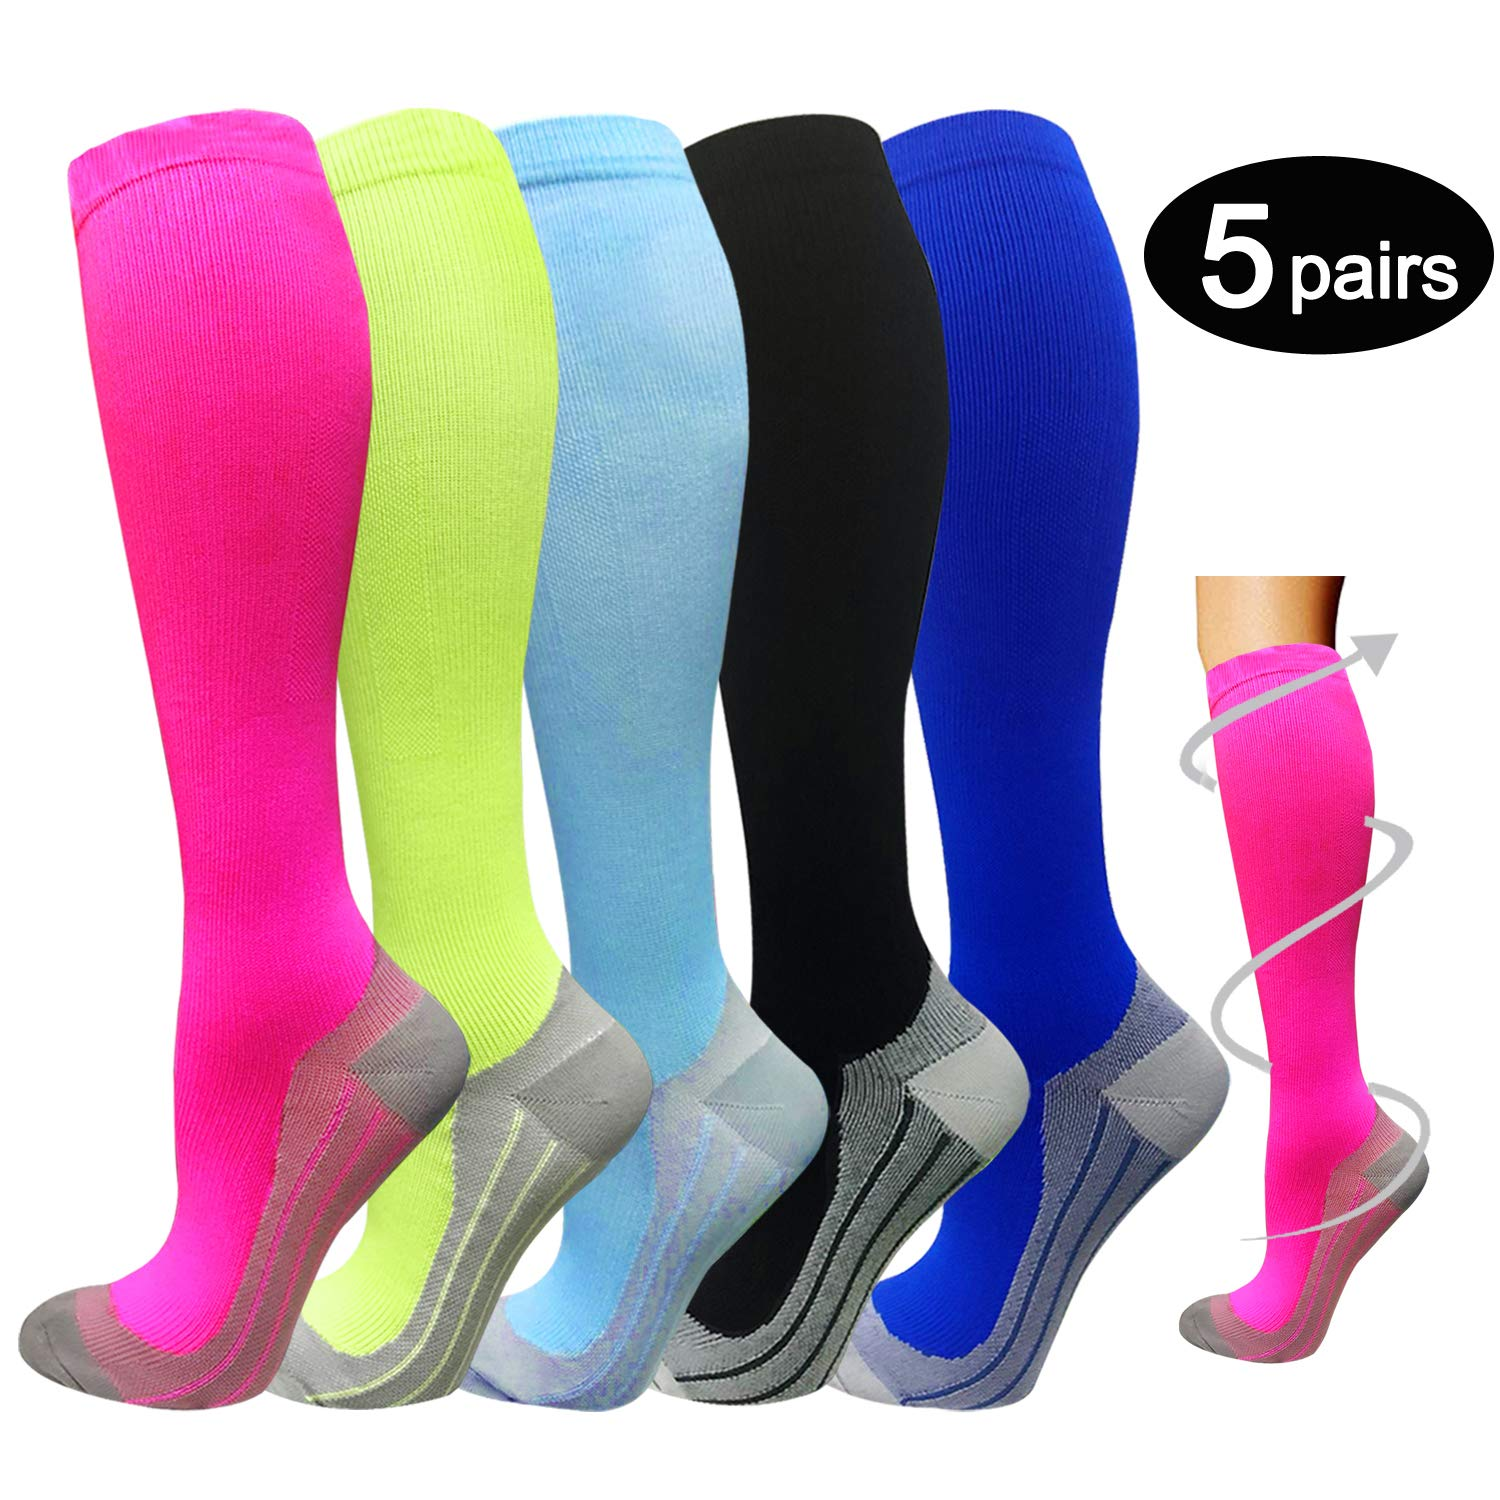 5 Pairs Compression Socks Women & Men -Best Medical,Nursing,Travel & Flight Socks-Running & Fitness,Pregnancy & Maternity-15-20mmHg (S/M, Assorted 4)